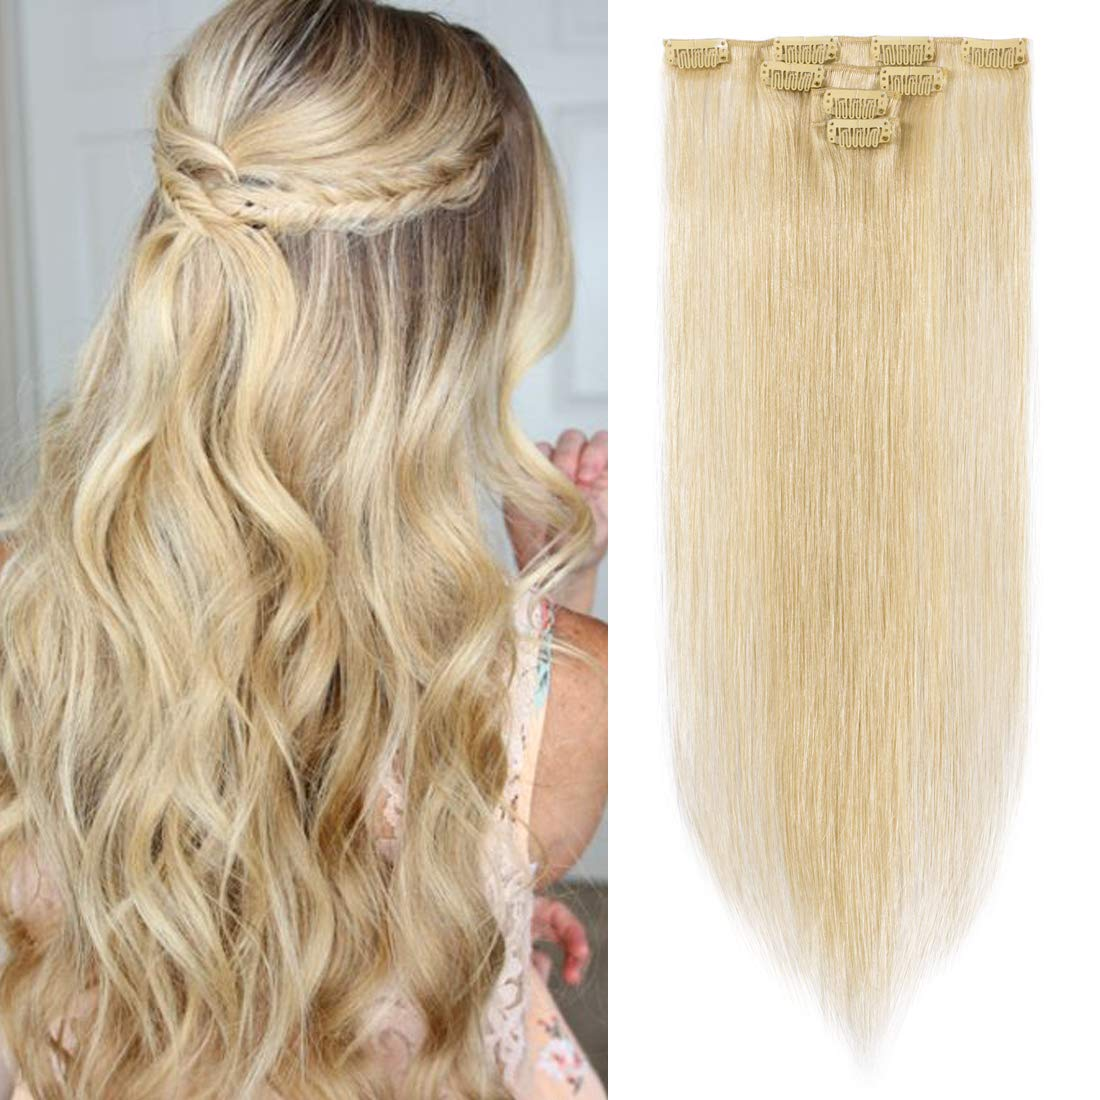 SEGO 4 Pcs Product 40g Clip Human Extens Extensions In Hair Lowest price challenge